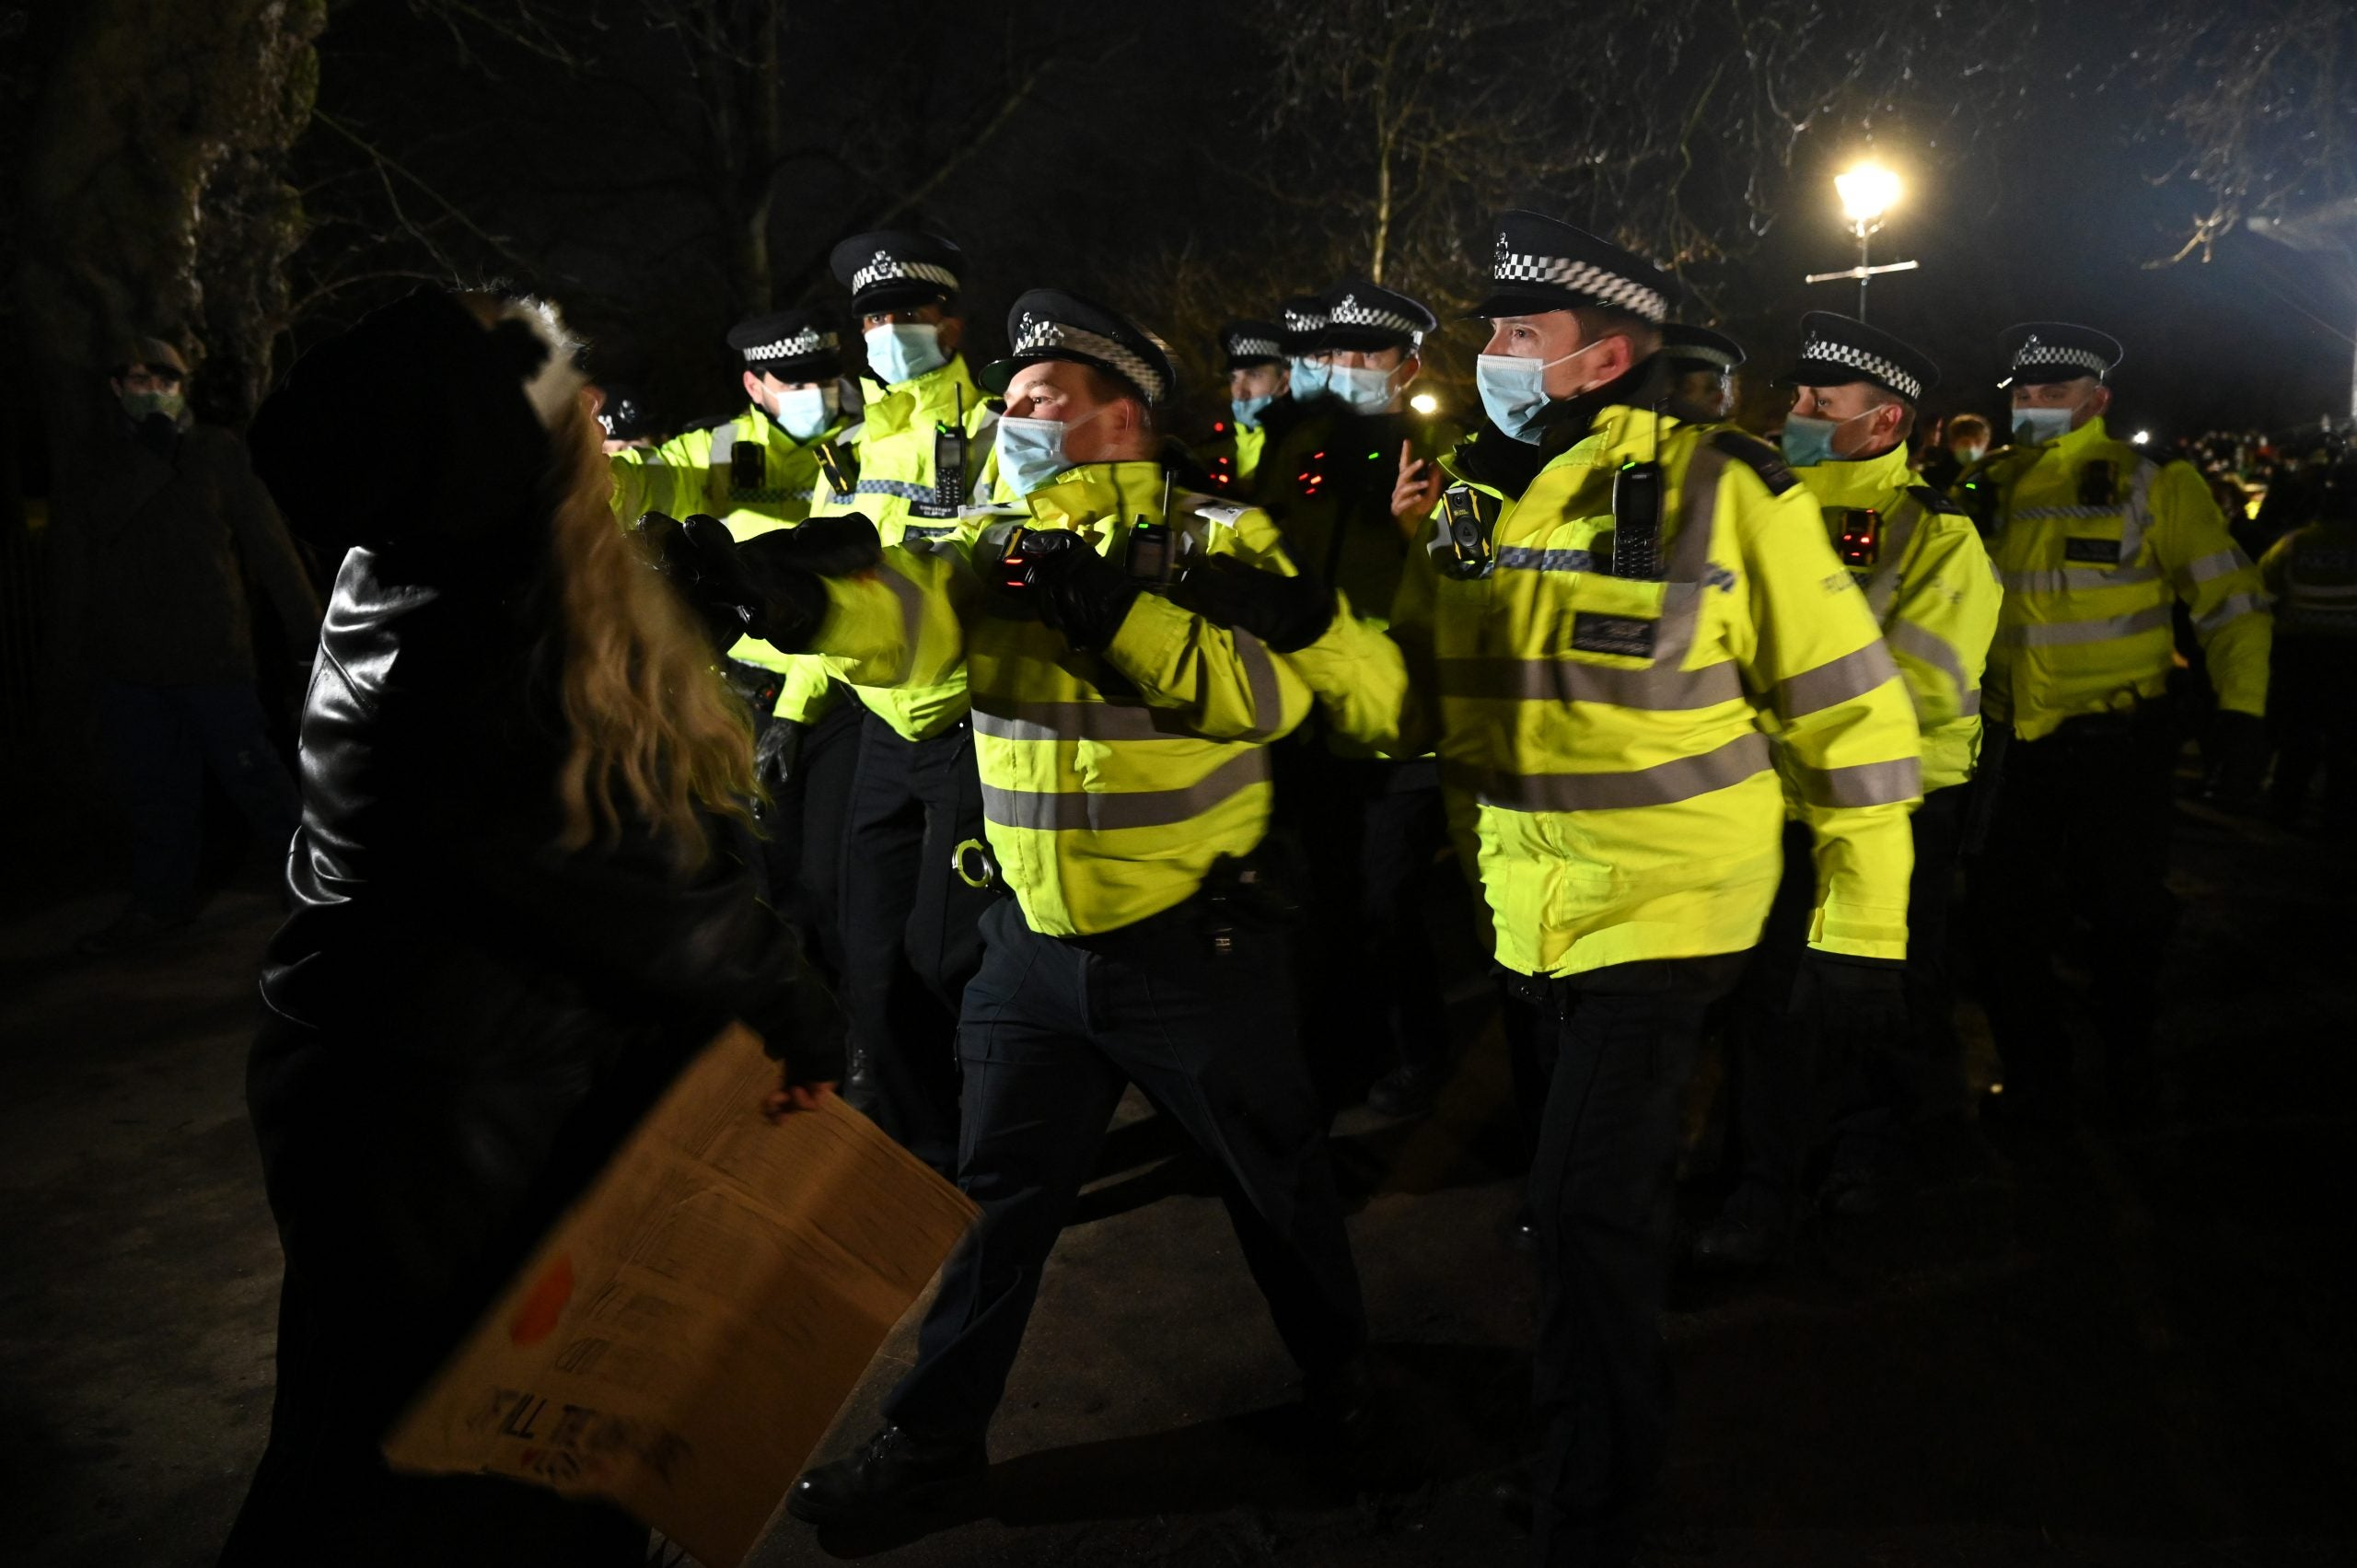 The crackdown on the Clapham vigil shows why the policing bill is so dangerous